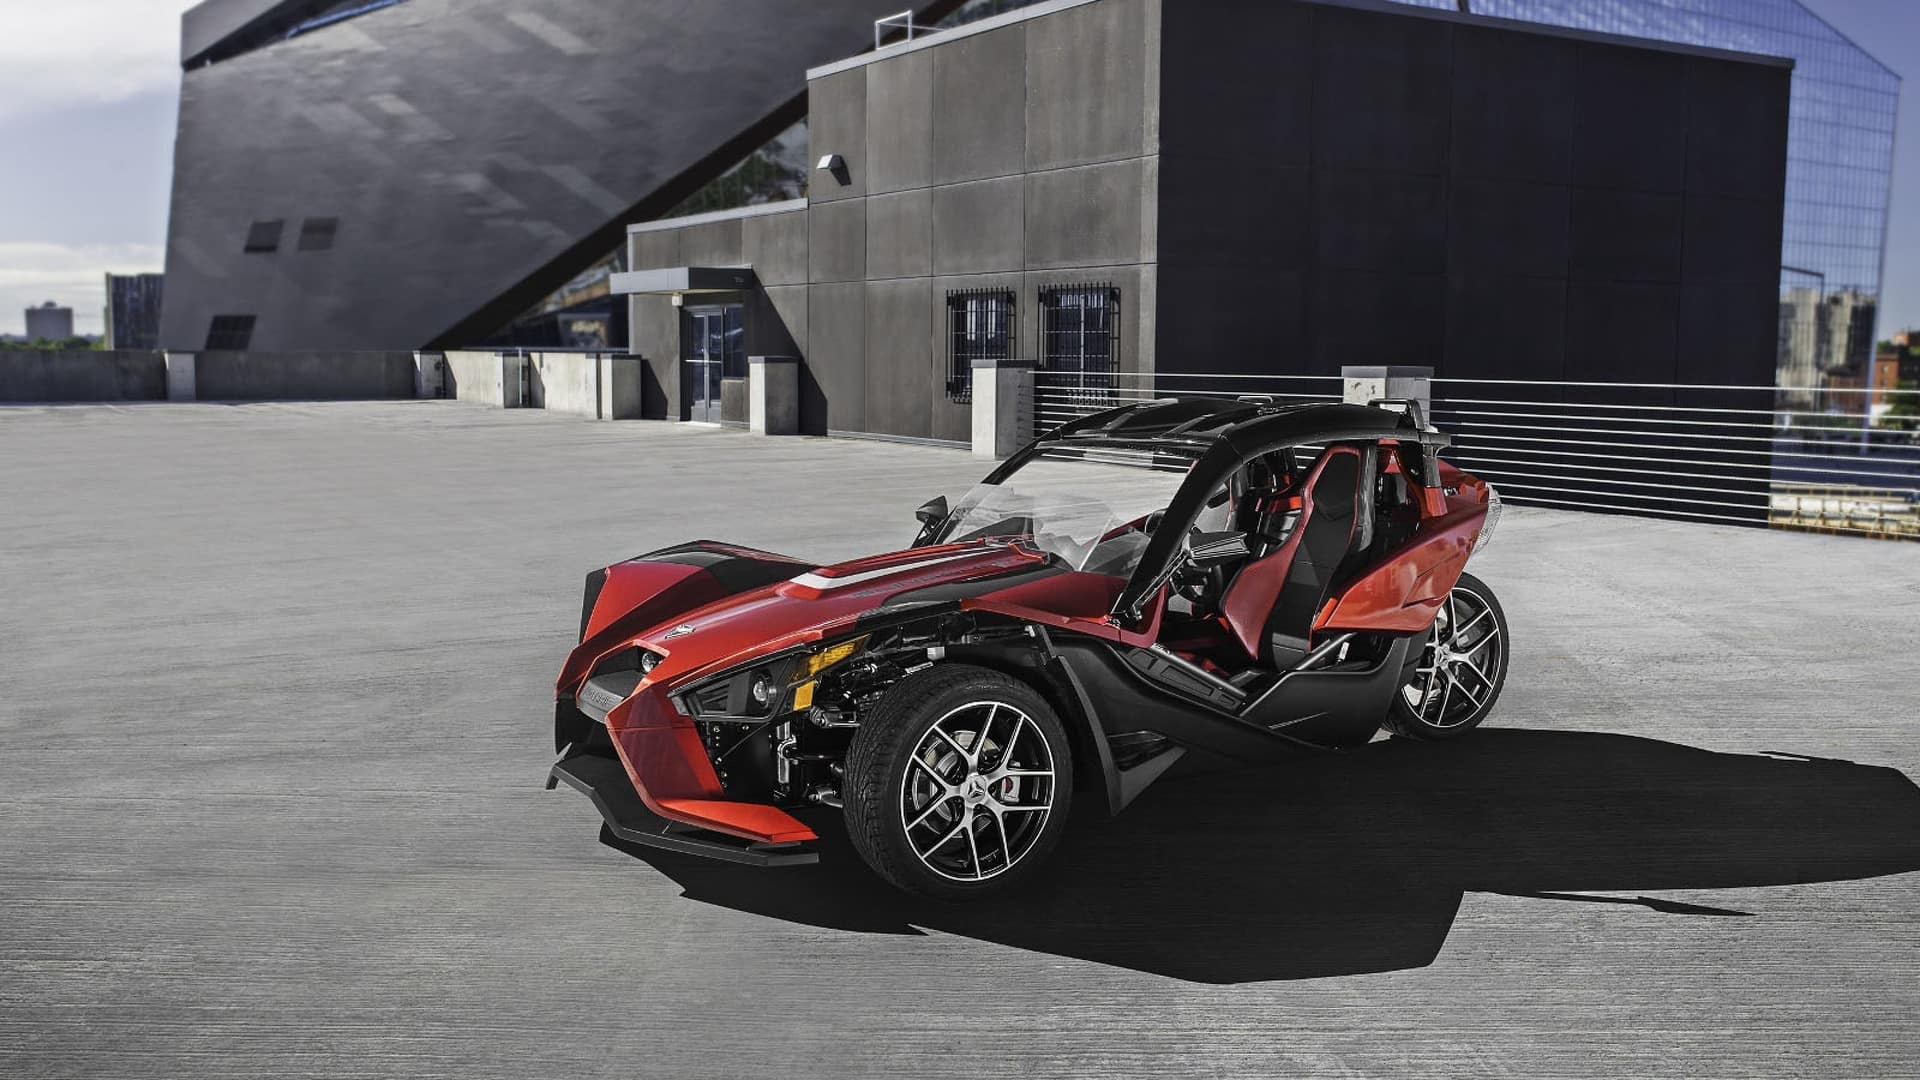 The 2017 Polaris Slingshot Shows Up With A Removable Roof